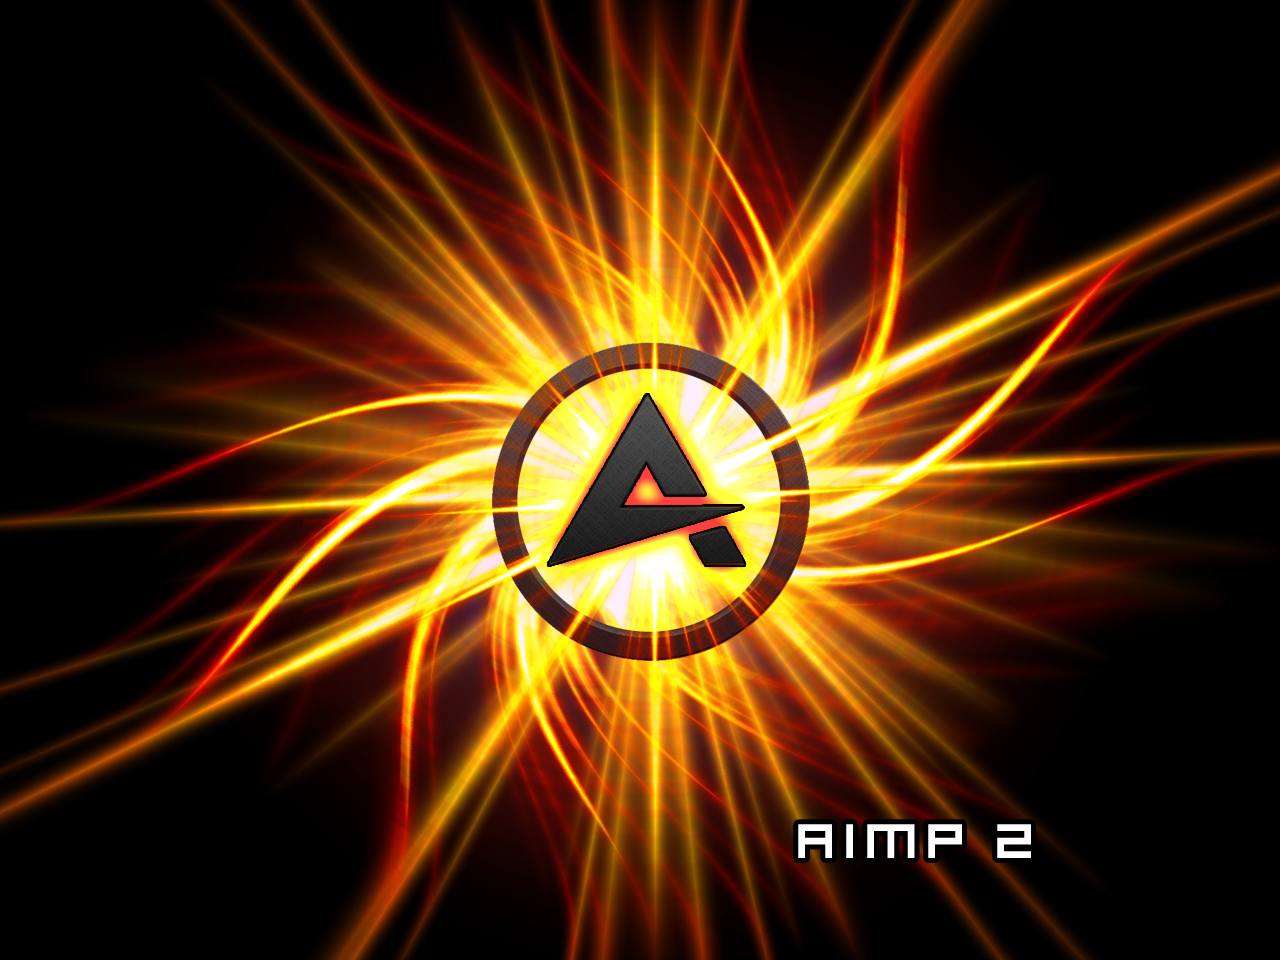 Nice wallpapers Aimp2 1280x960px